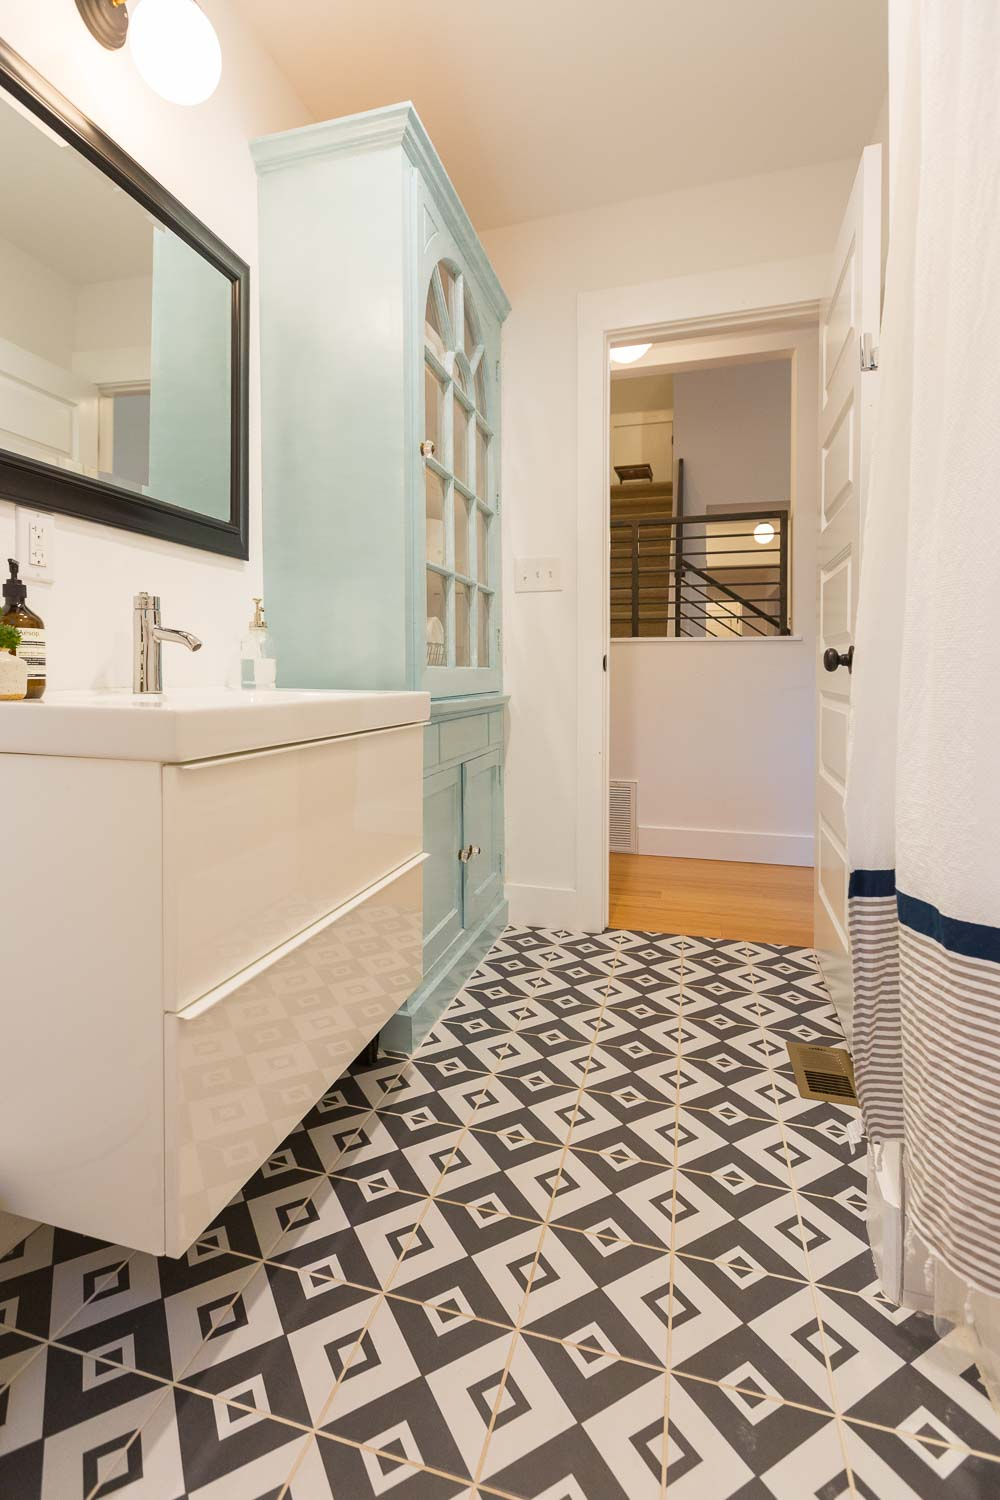 We love the guest bathroom with the bold black and white tile patterned floor. We reused the original dining room hutch as a linen cabinet. It sings in a soft aqua color. The modern ikea vanity was an affordable addition.